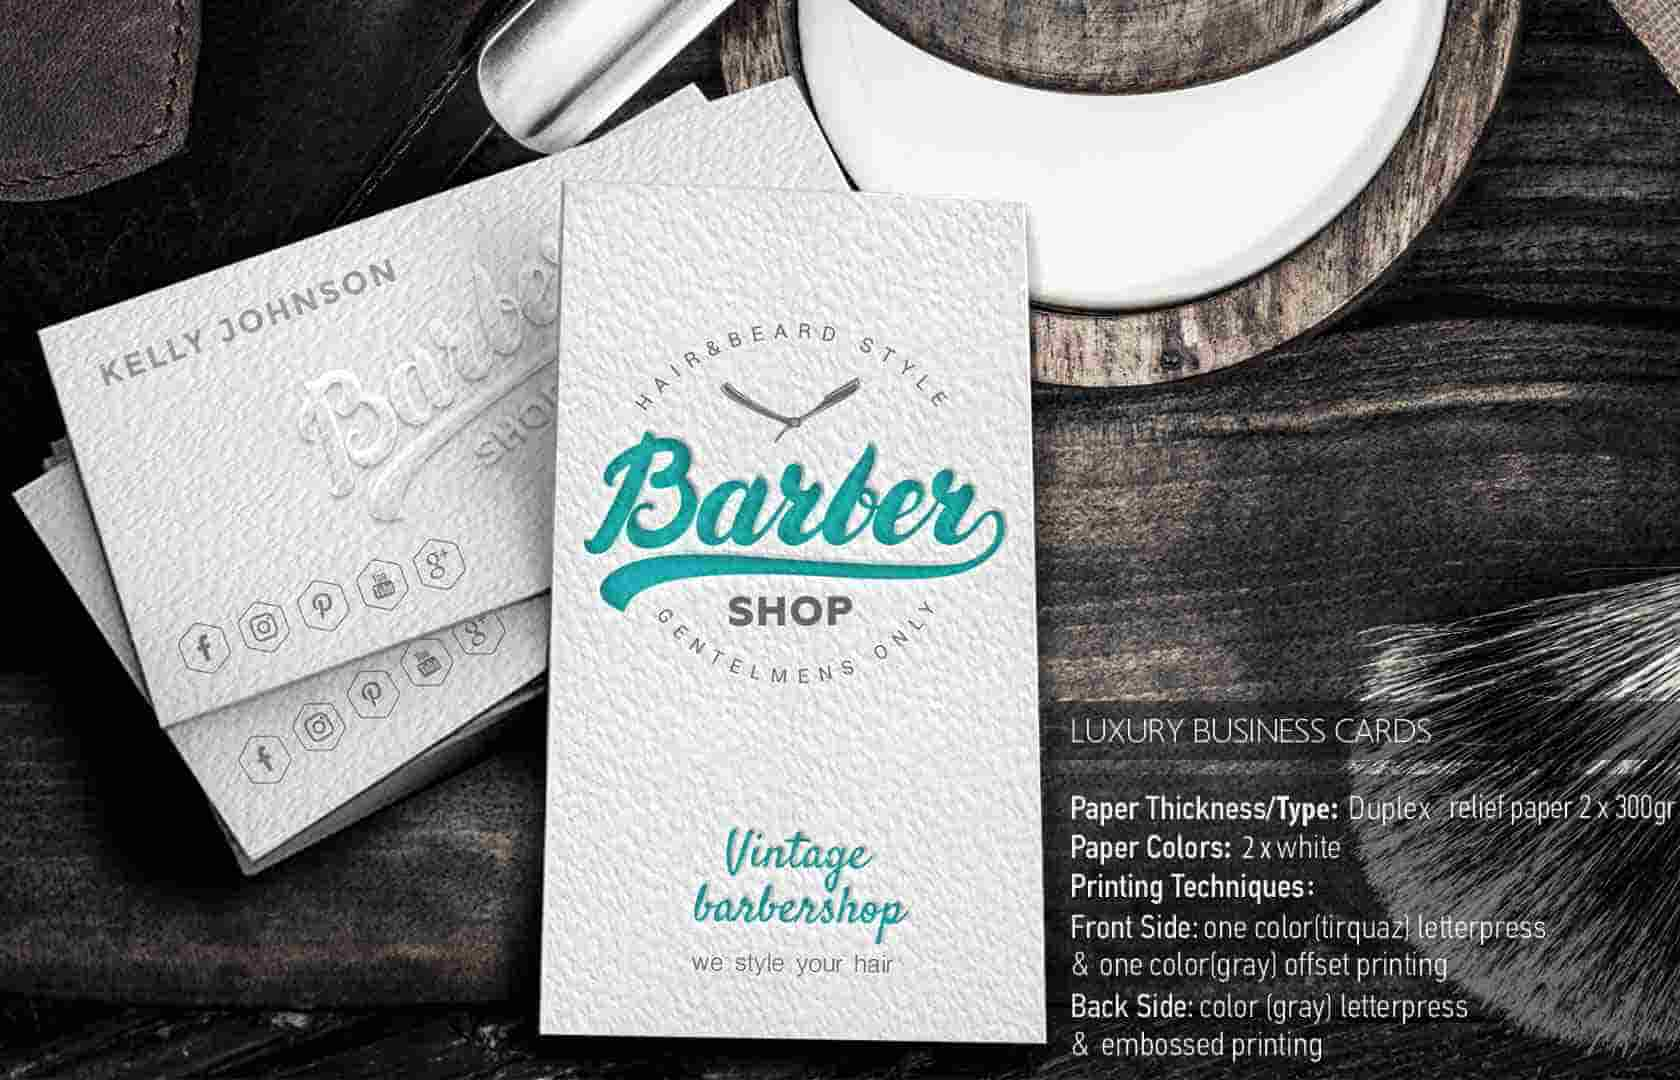 White business card with leterpress printing.